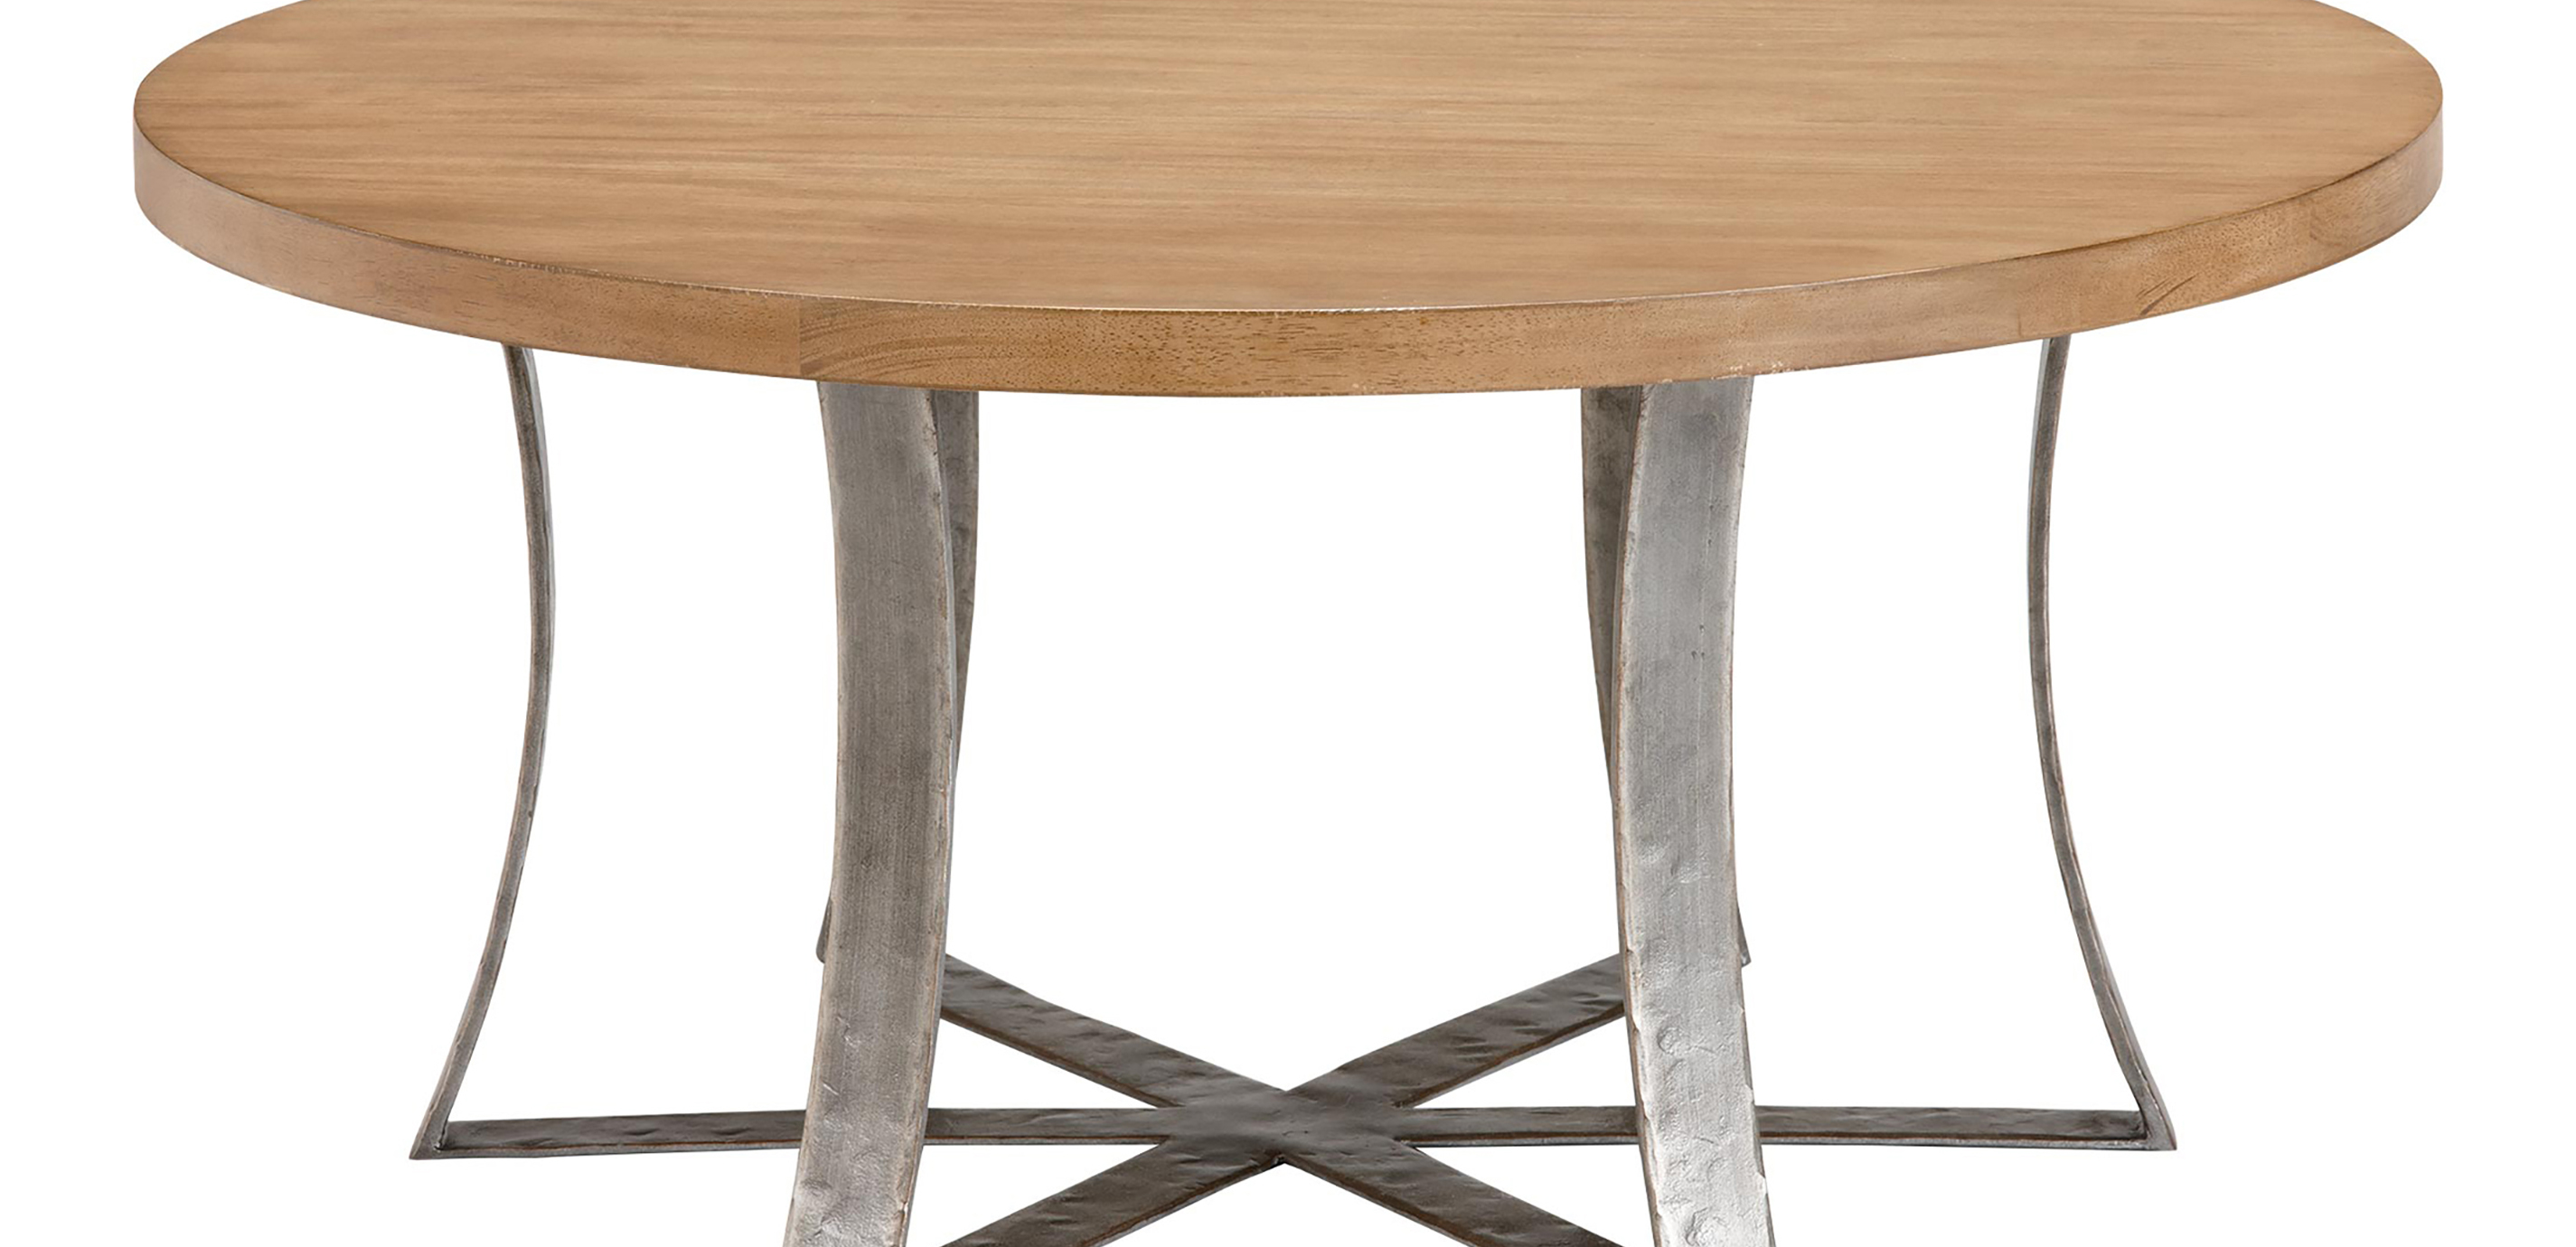 shelf classic rustic overstock x by home garden product bryson table shipping q free end with base inspire today